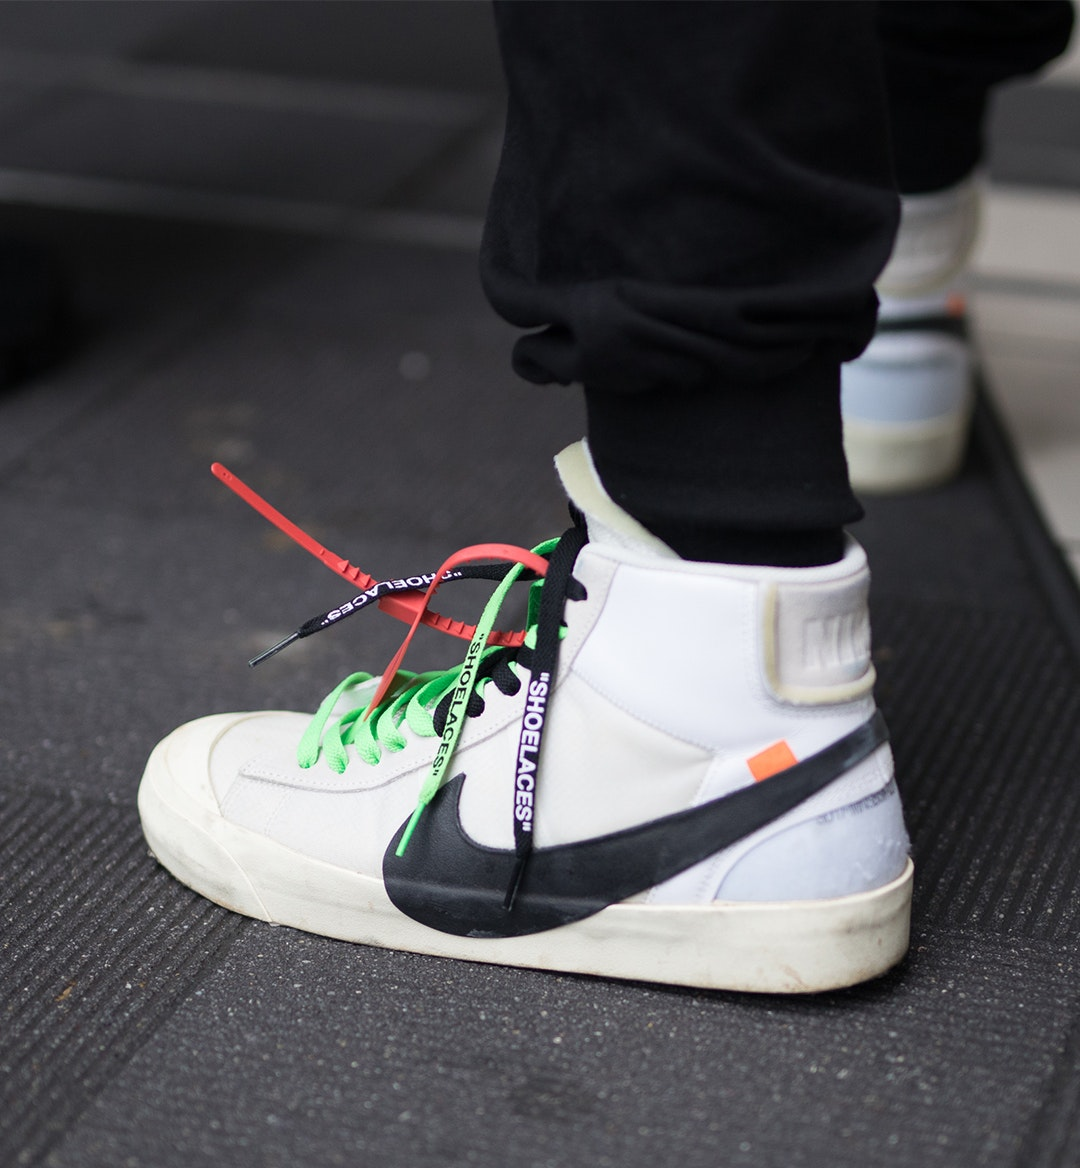 12 Shoes Rappers Love